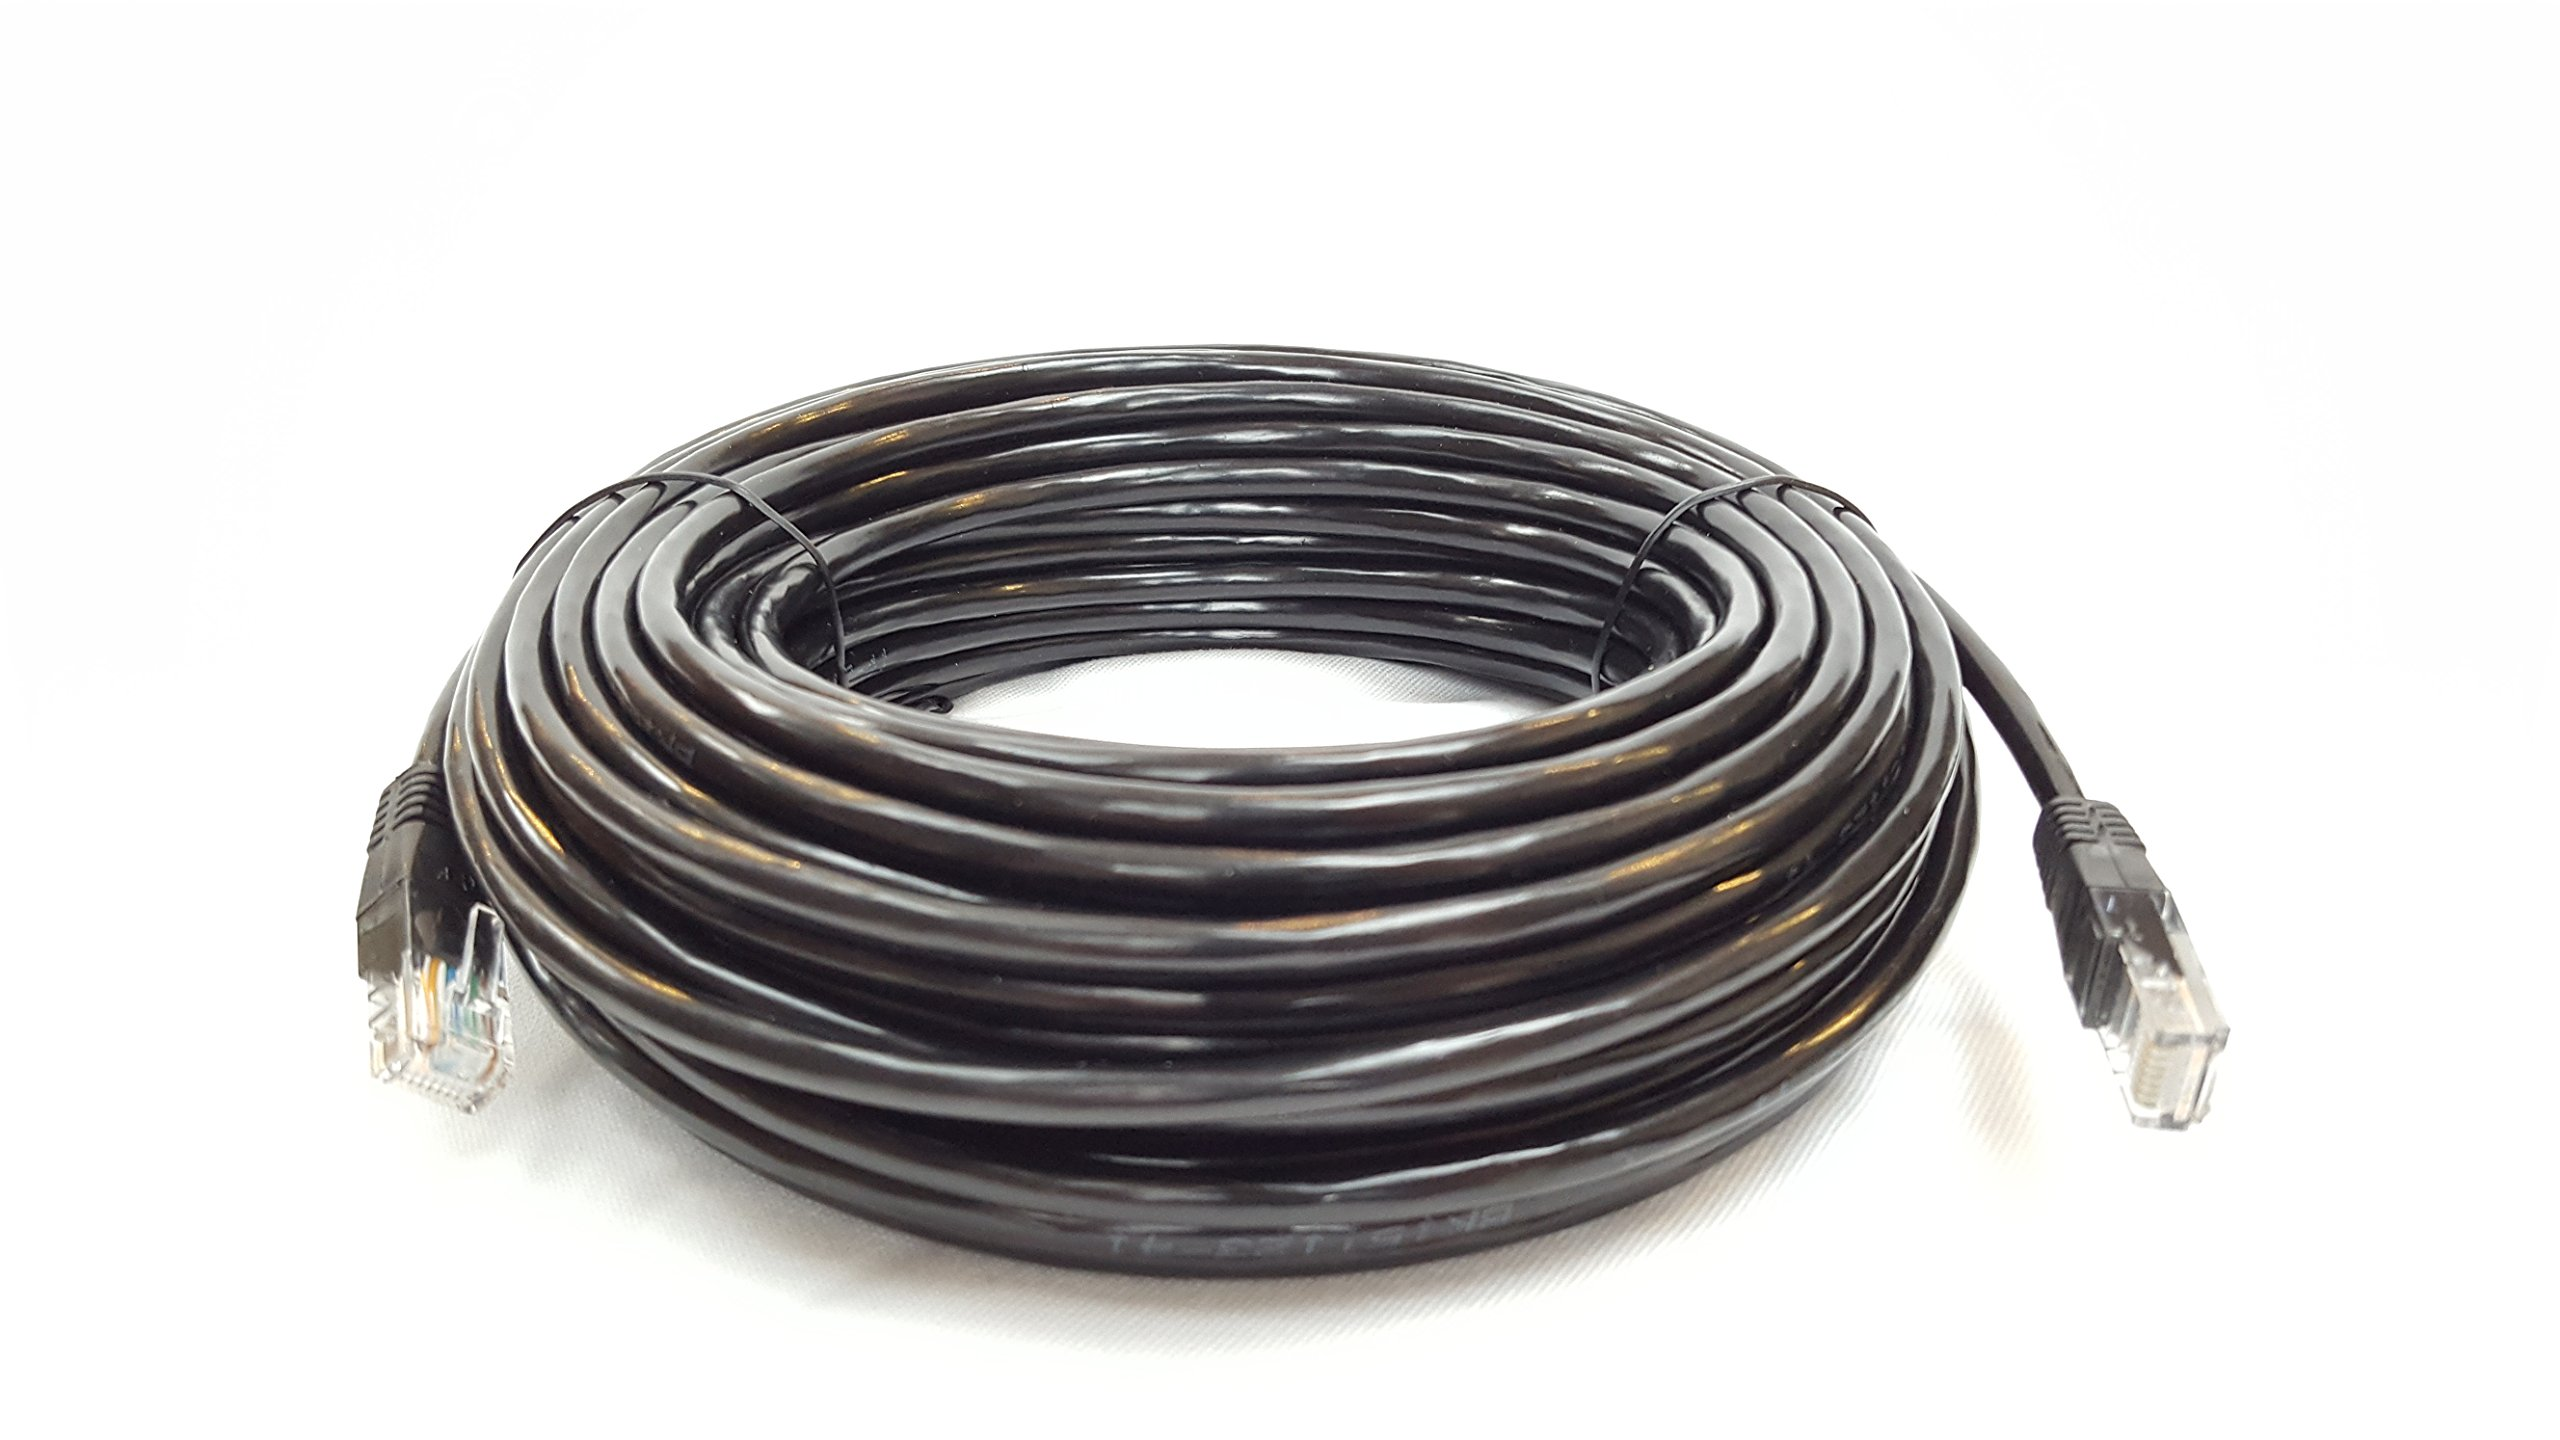 Cable Sourcing - 100ft (30m) CAT5e cable, EXTERNAL (outdoor use) & INTERNAL, 100% SOLID COPPER, Ethernet, CCTV,, 10/100/1000mb, RJ45 Plugs, Networking & Patch Cable, DATA/LAN, BLACK by Cable Sourcing